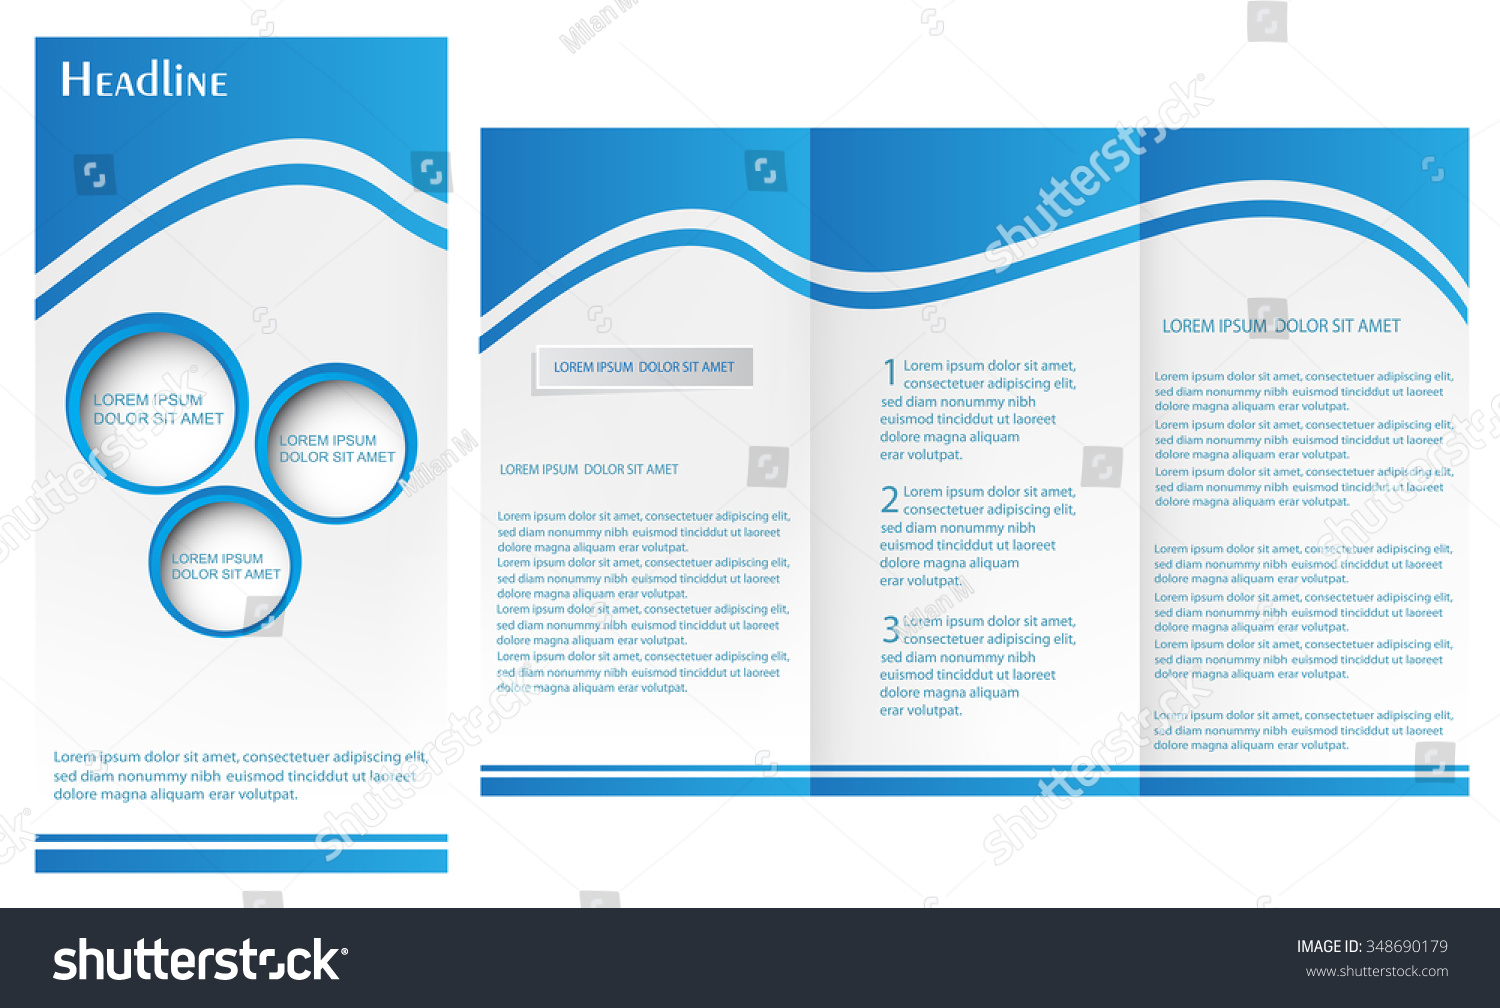 Great 1 Page Proposal Template Small 1 Week Schedule Template Solid 110 Block Label Template 1st Birthday Invite Templates Youthful 2 Page Resume Format Doc Gray2 Page Resume Template Word Tri Fold Brochure Designvector Brochure Template Stock Vector ..